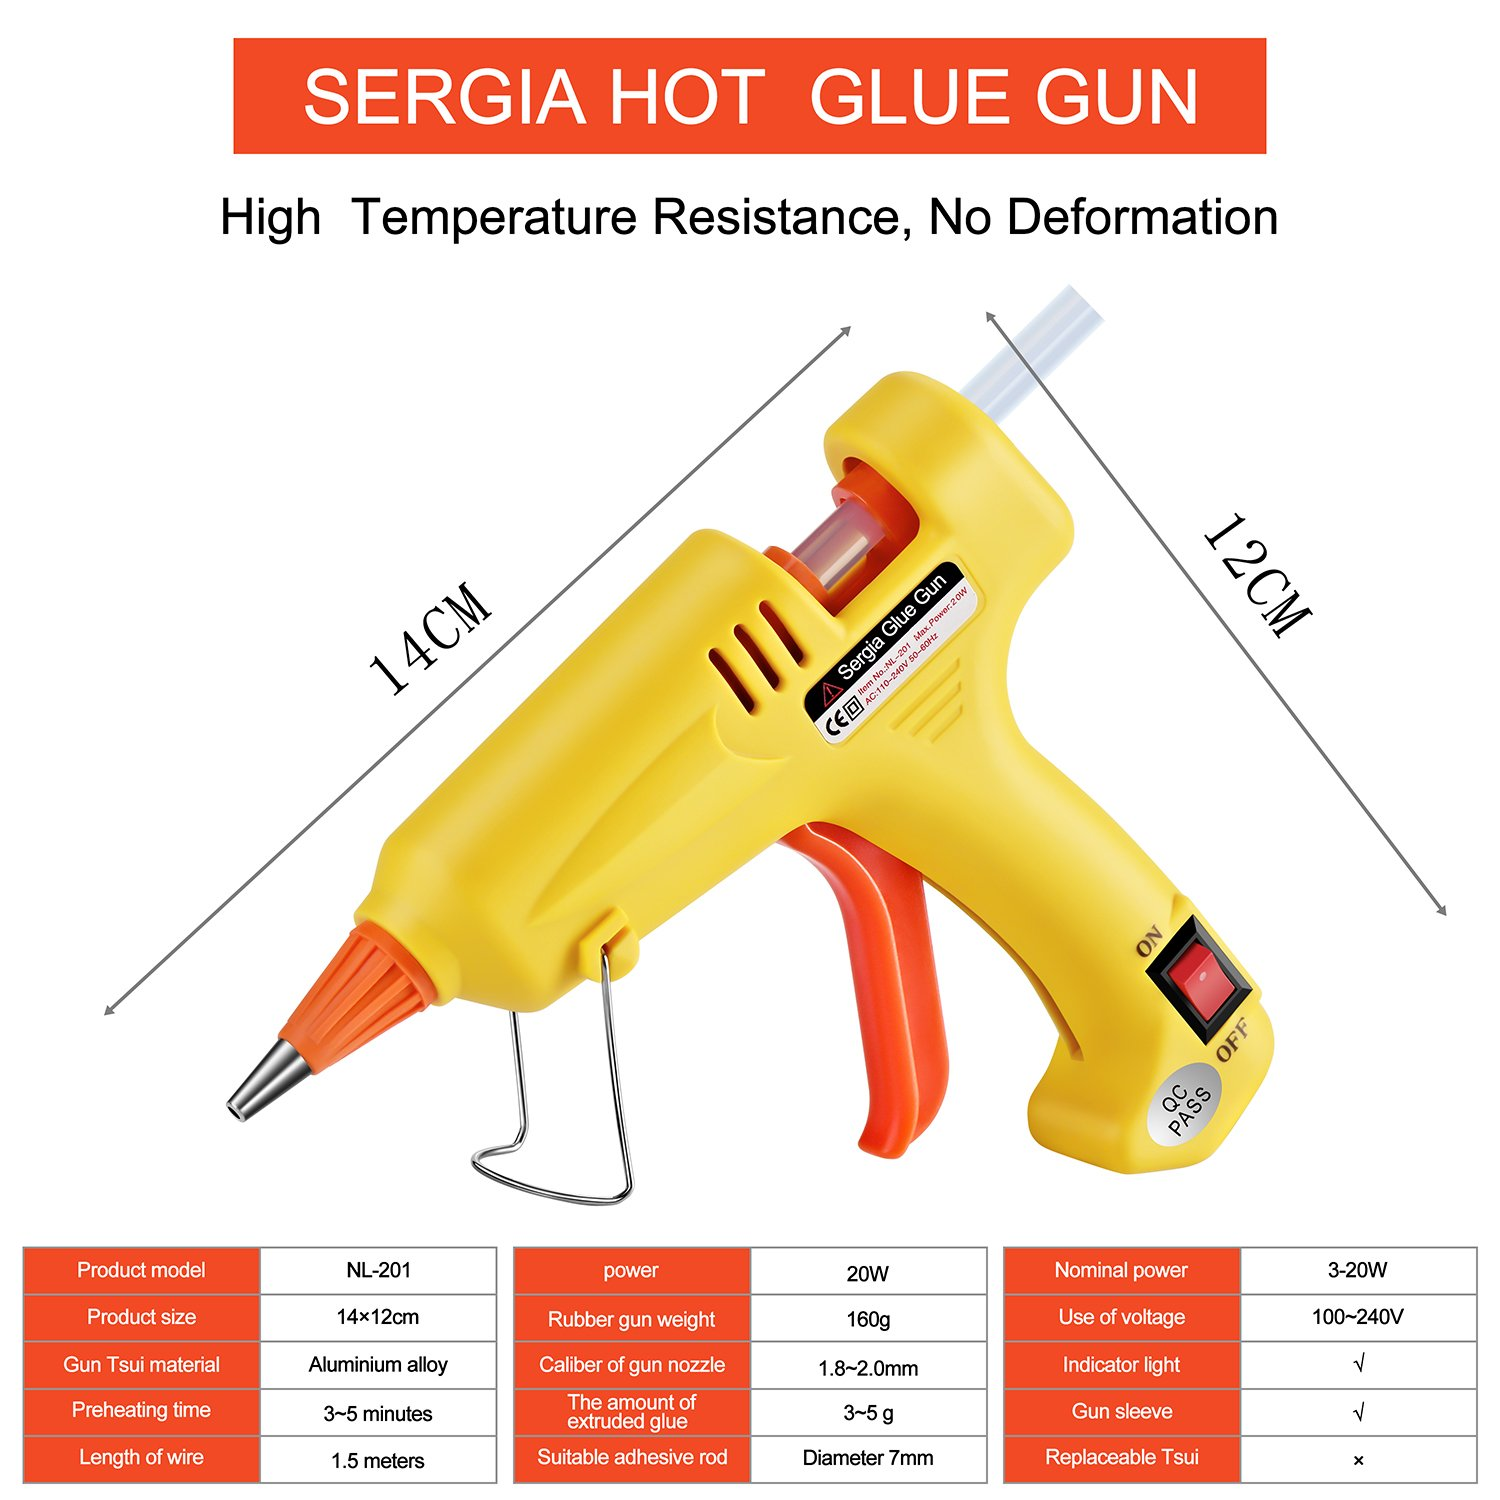 Hot Glue Gun Kit with 20 Pcs Glue Sticks, Mouse Pad, Anti-Hot Cover,Portable case for DIY Small Projects, Craft and Arts & Home Or School Quick Repair Sealing Use, Christmas Decoration/Gift (20 Watt) by SERGIA (Image #2)